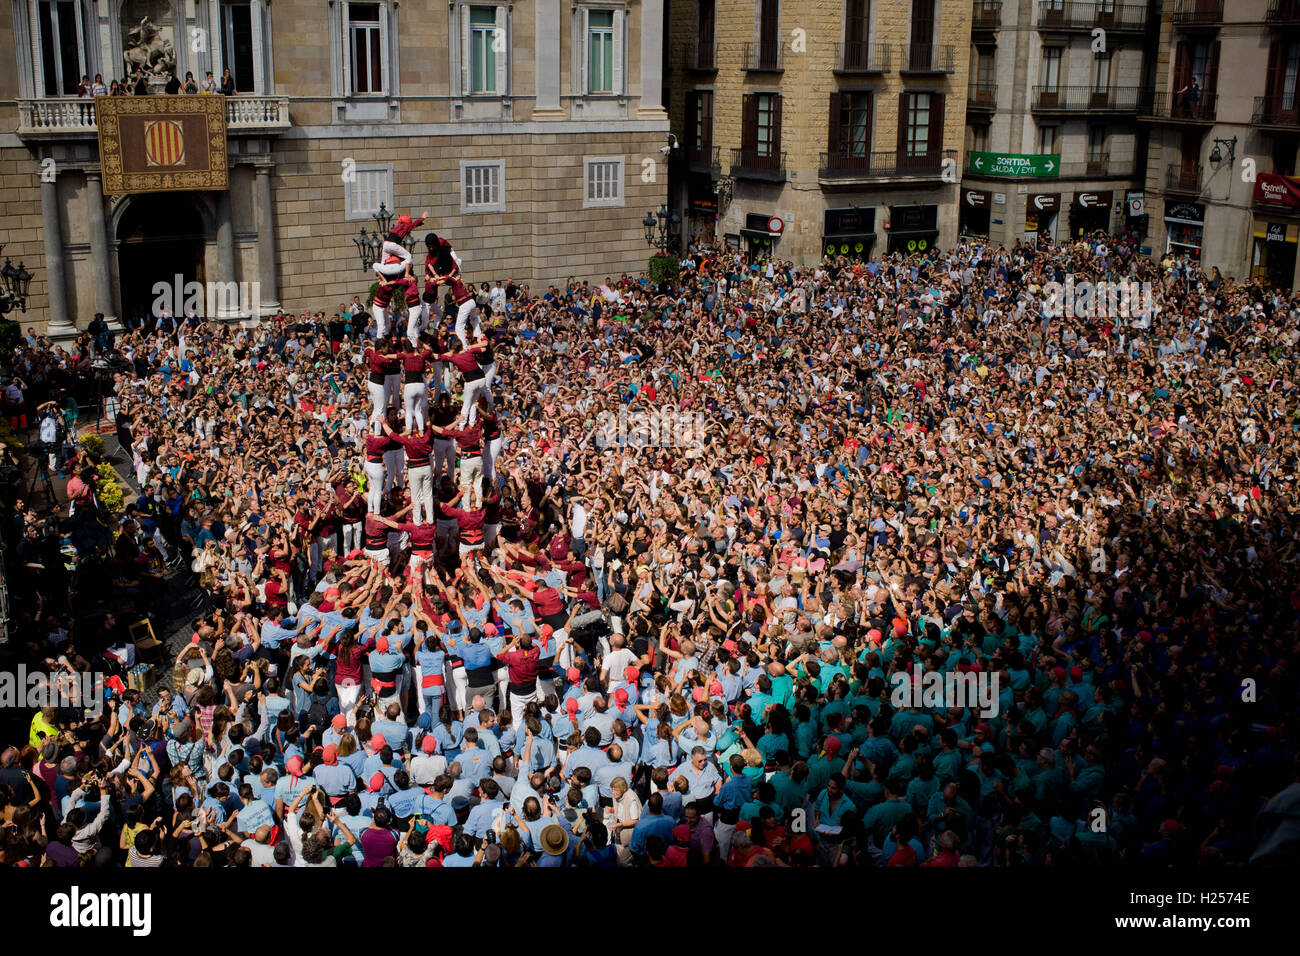 Barcelona, Catalonia, Spain. 24th Sep, 2016. A human tower (castell in catalan) is built in Barcelona. For The Merce Festival (Festes de la Merce) has been held the traditional Jornada Castellera (Human Towers Day) in the town hall square of Barcelona. Credit:  Jordi Boixareu/ZUMA Wire/Alamy Live News Stock Photo